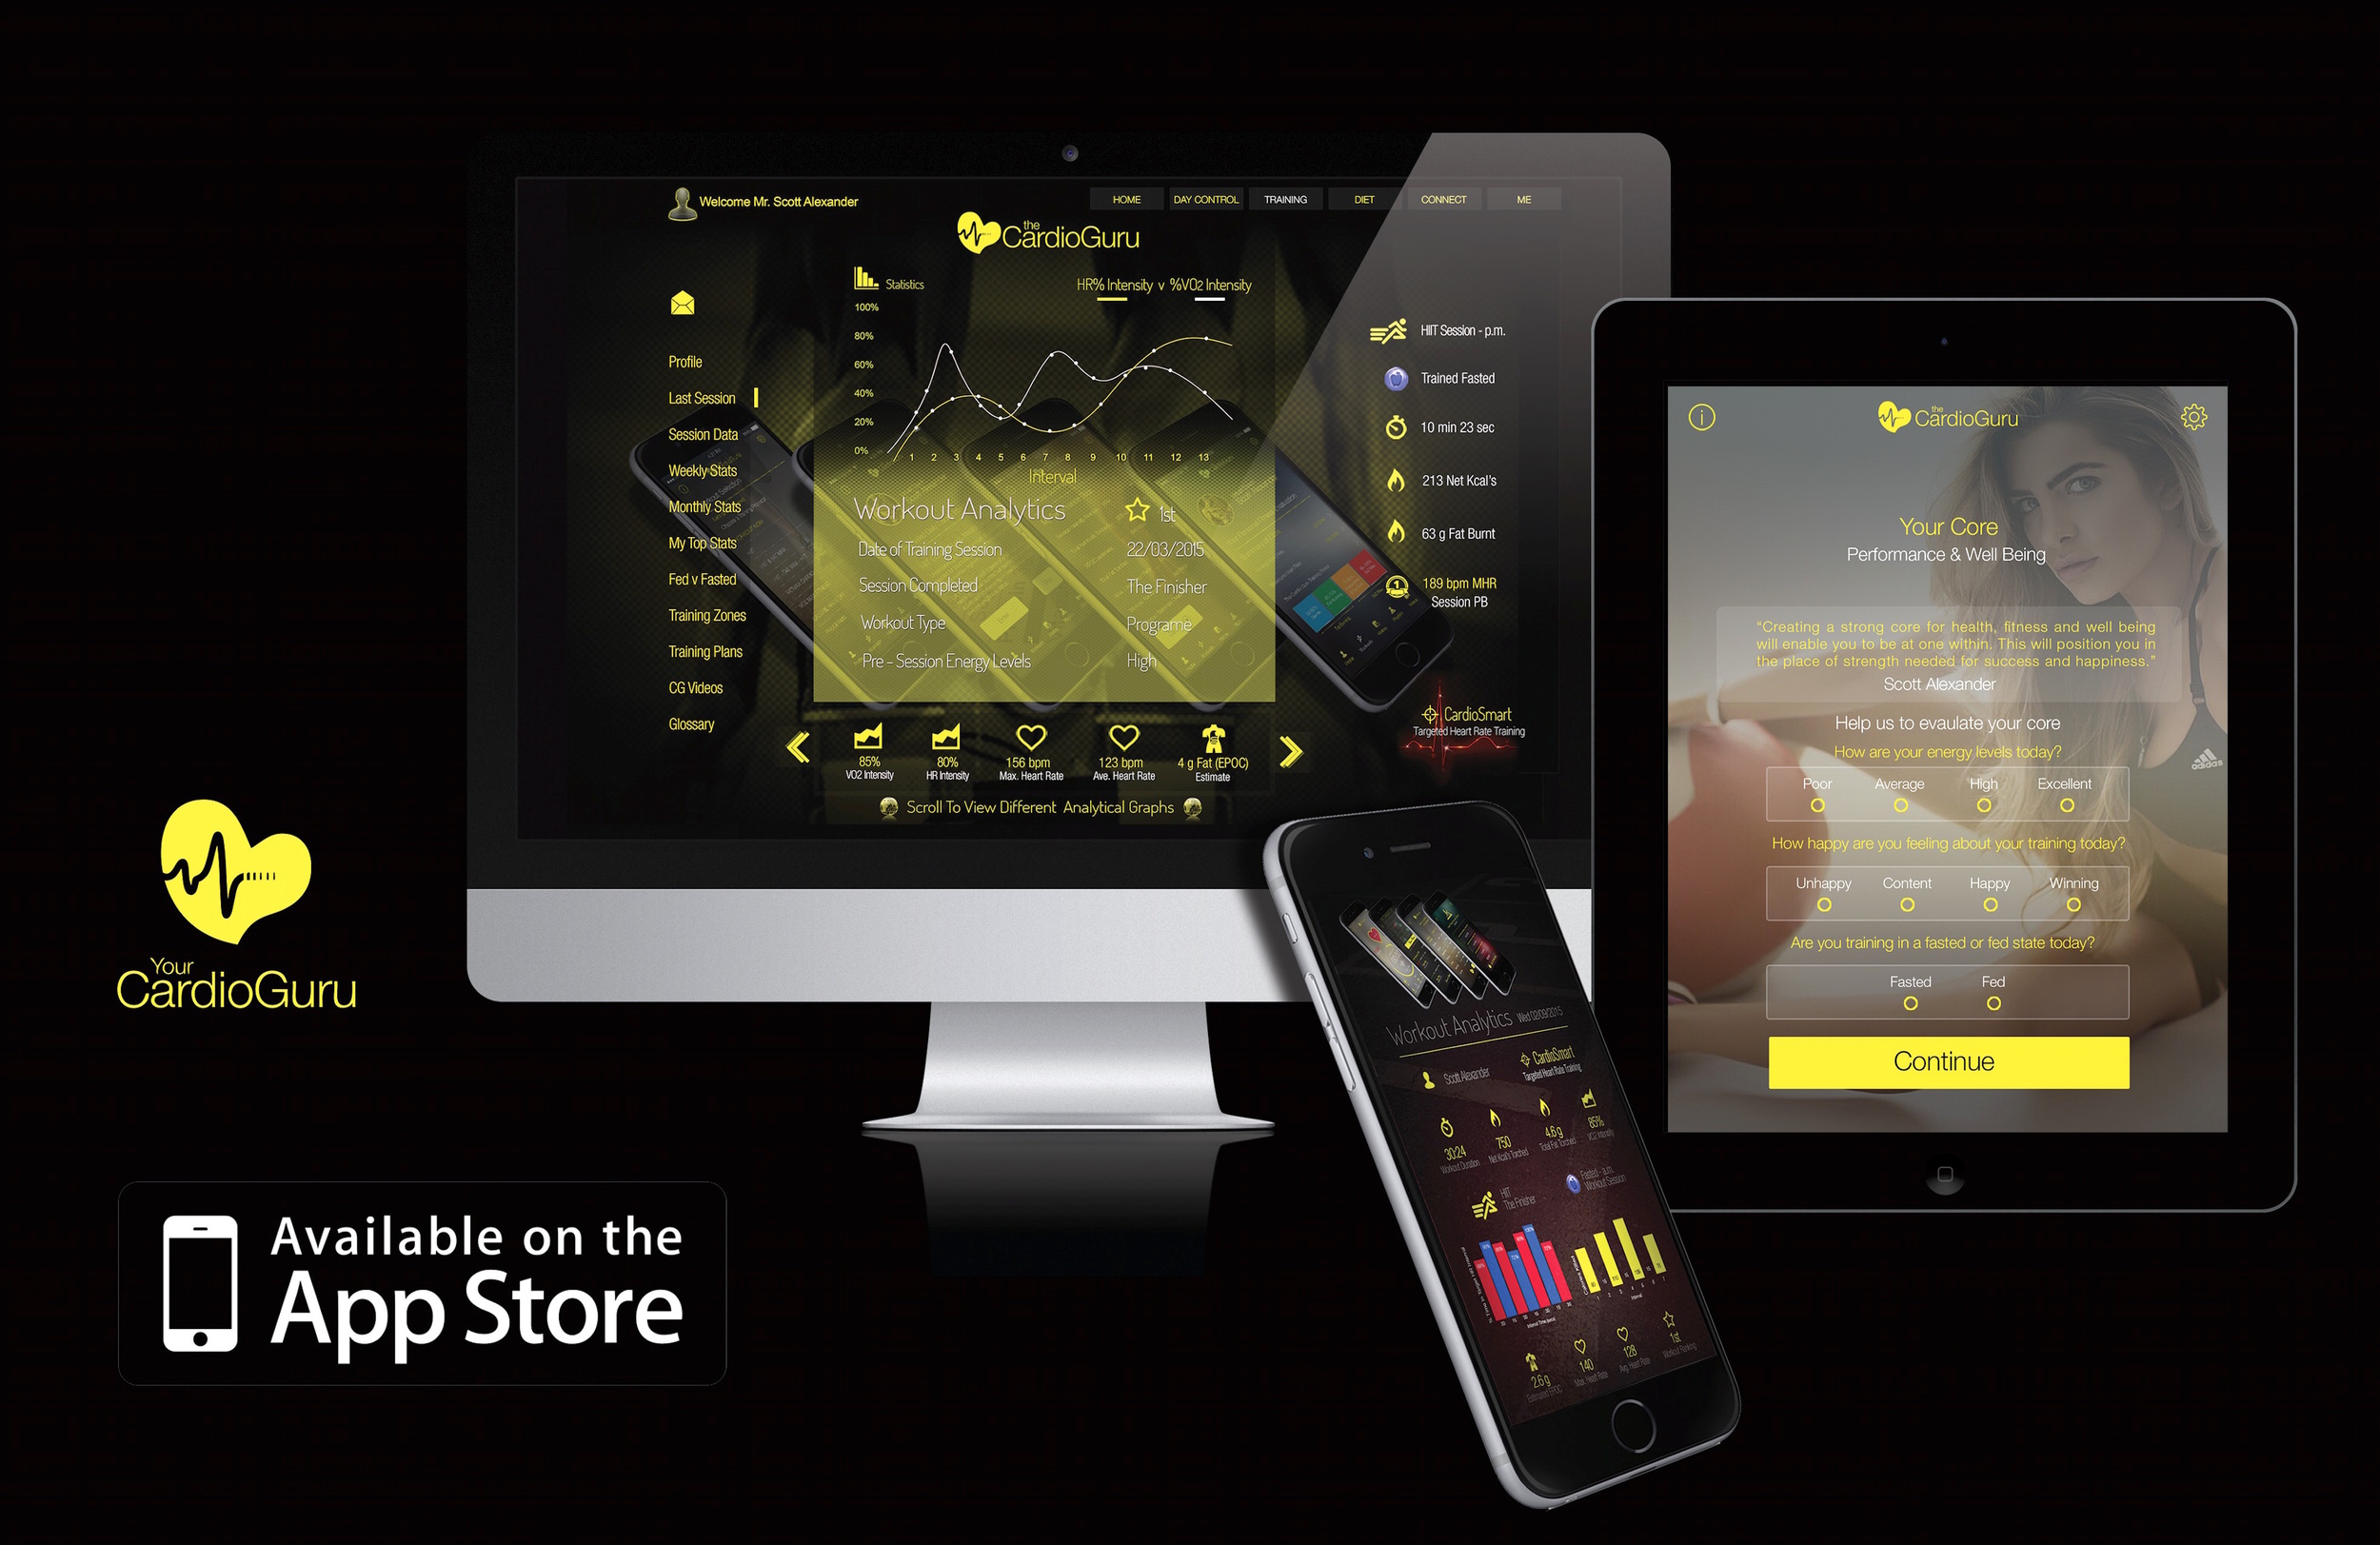 Both Your CardioGuru & Your CardioGuru Pro available on : iOS 8 or later, iPhone 5 or later, iPad Air, iPad Mini, iPad Pro